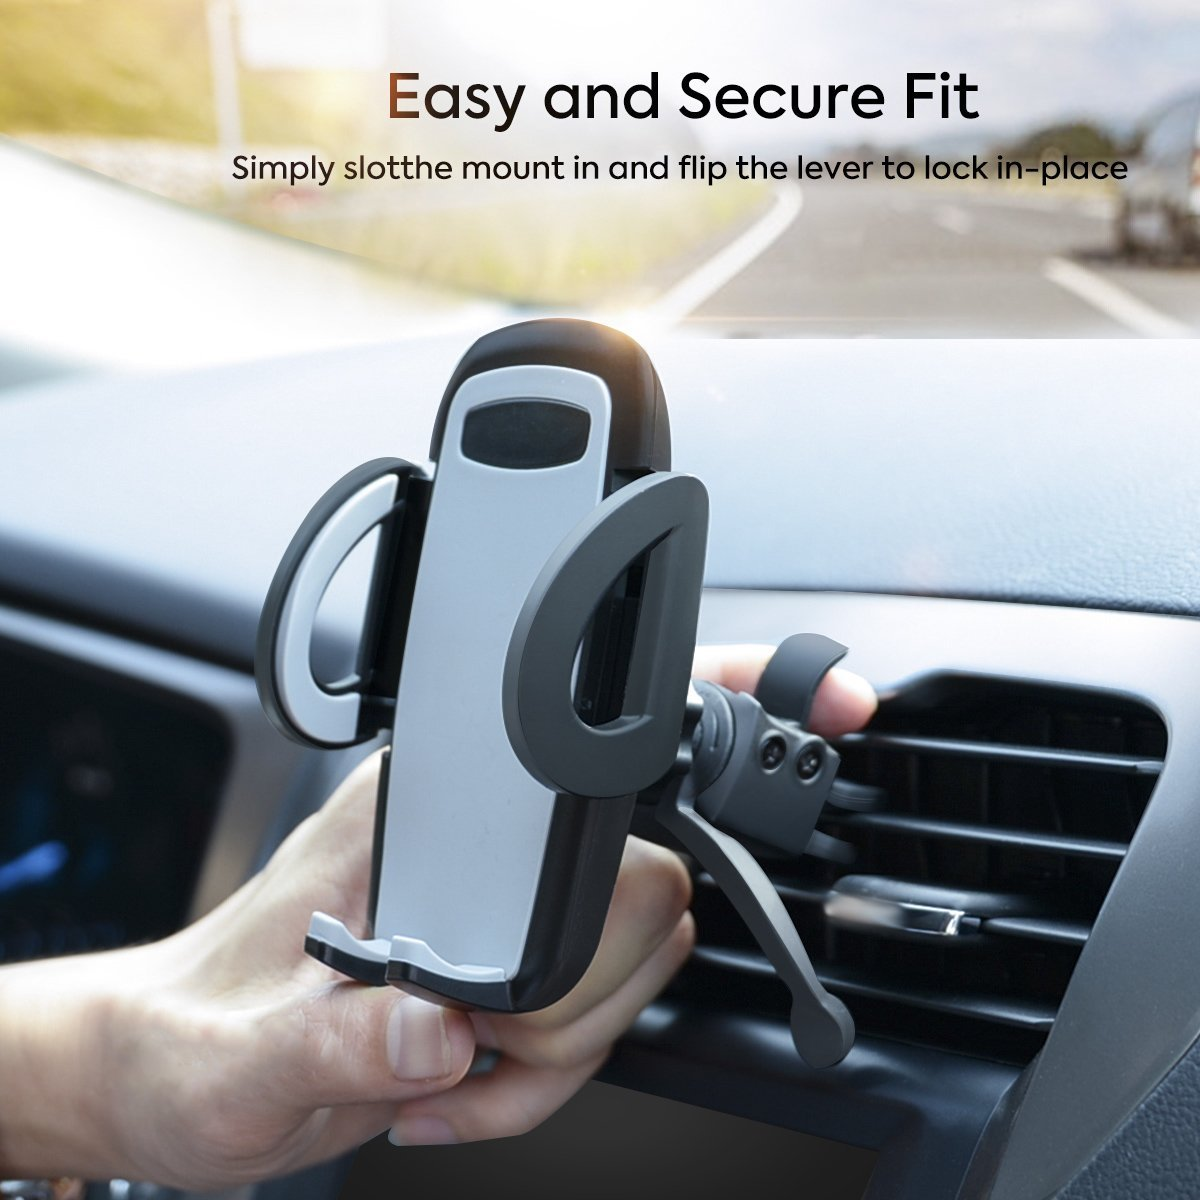 SGRICE Universal Car Air Vent Phone Mount Holder Cradle Compatible for iPhone X//8//8Plus//7//7Plus//6s//6Plus//5S LG Samsung Galaxy S6//S7//S8 Car Phone Mount Huawei and Other Smartphones gihtgiu